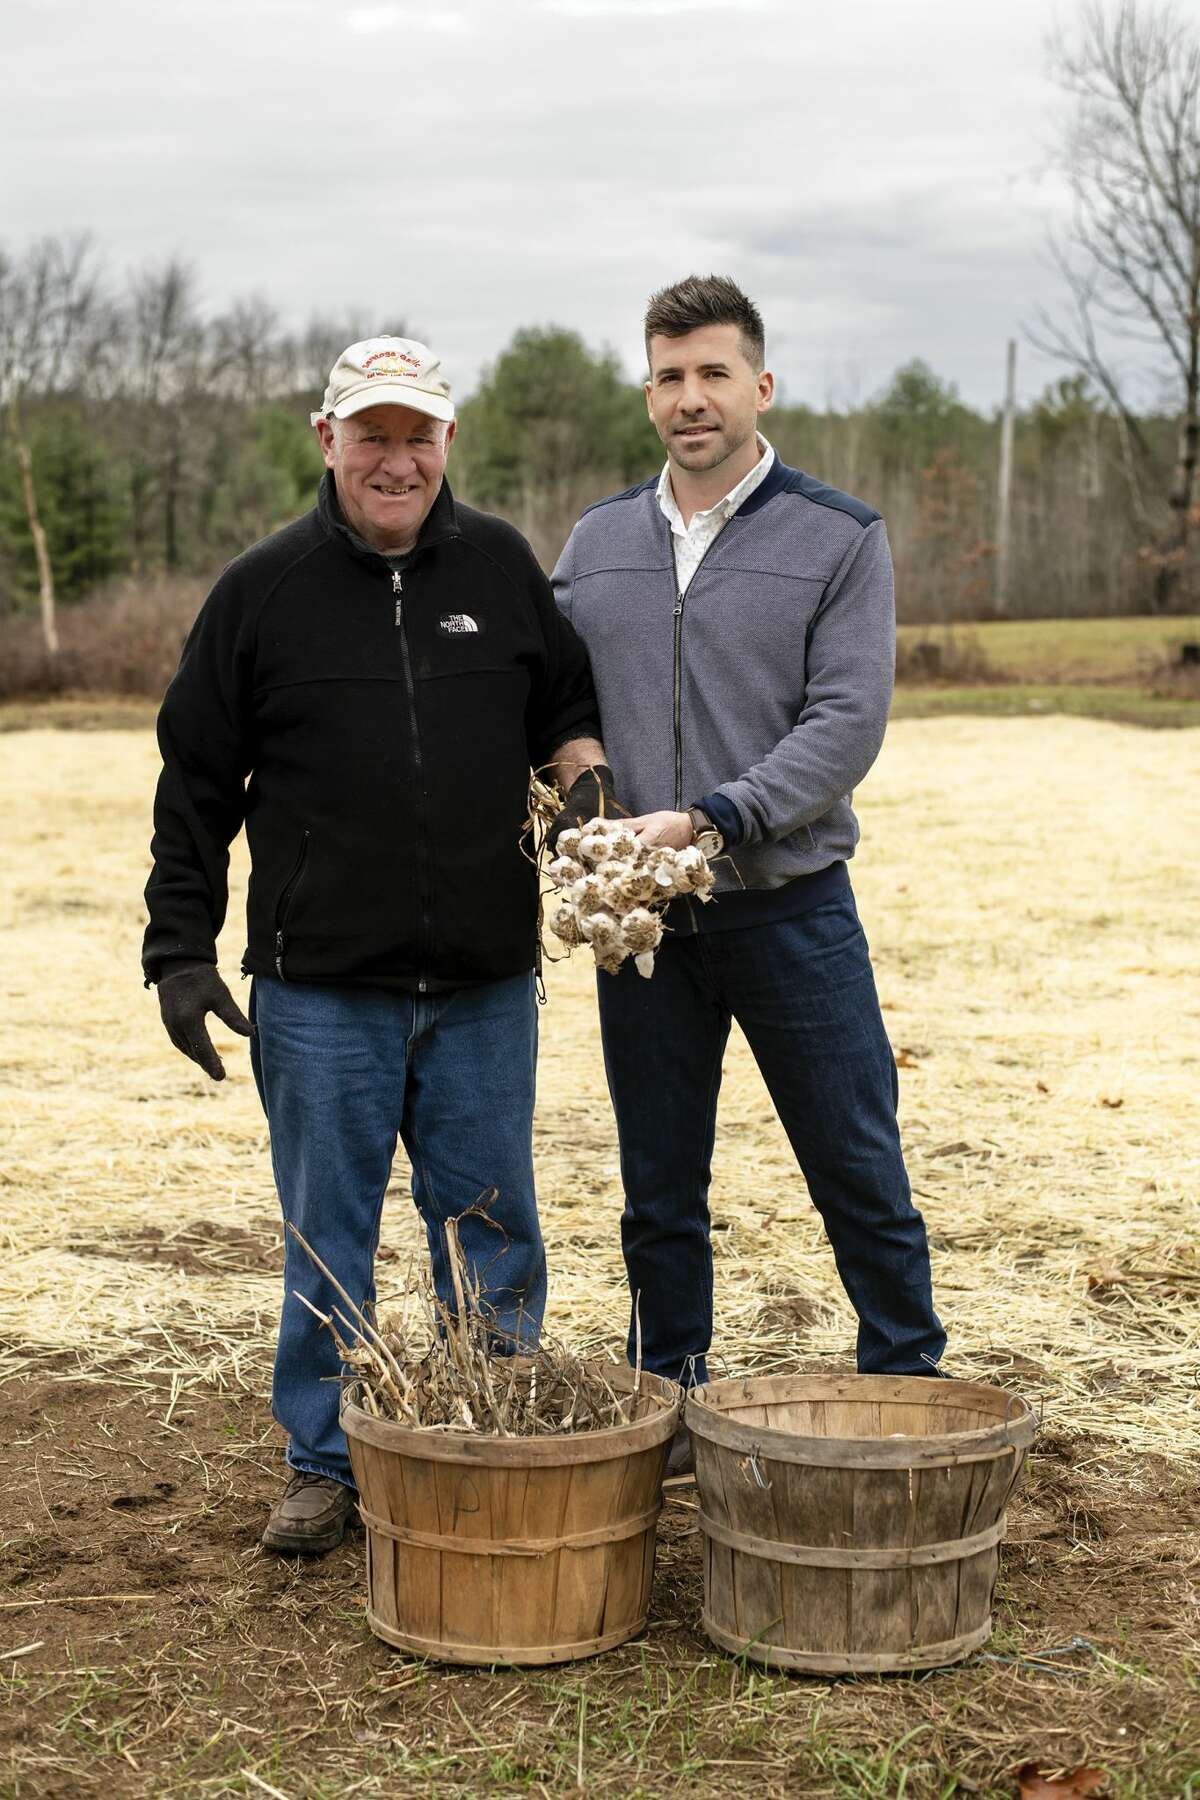 Saratoga Garlic founder Bill Higgins, left, and his son, Max, who now runs the company, show off the signature crowd at their Saratoga County farm.